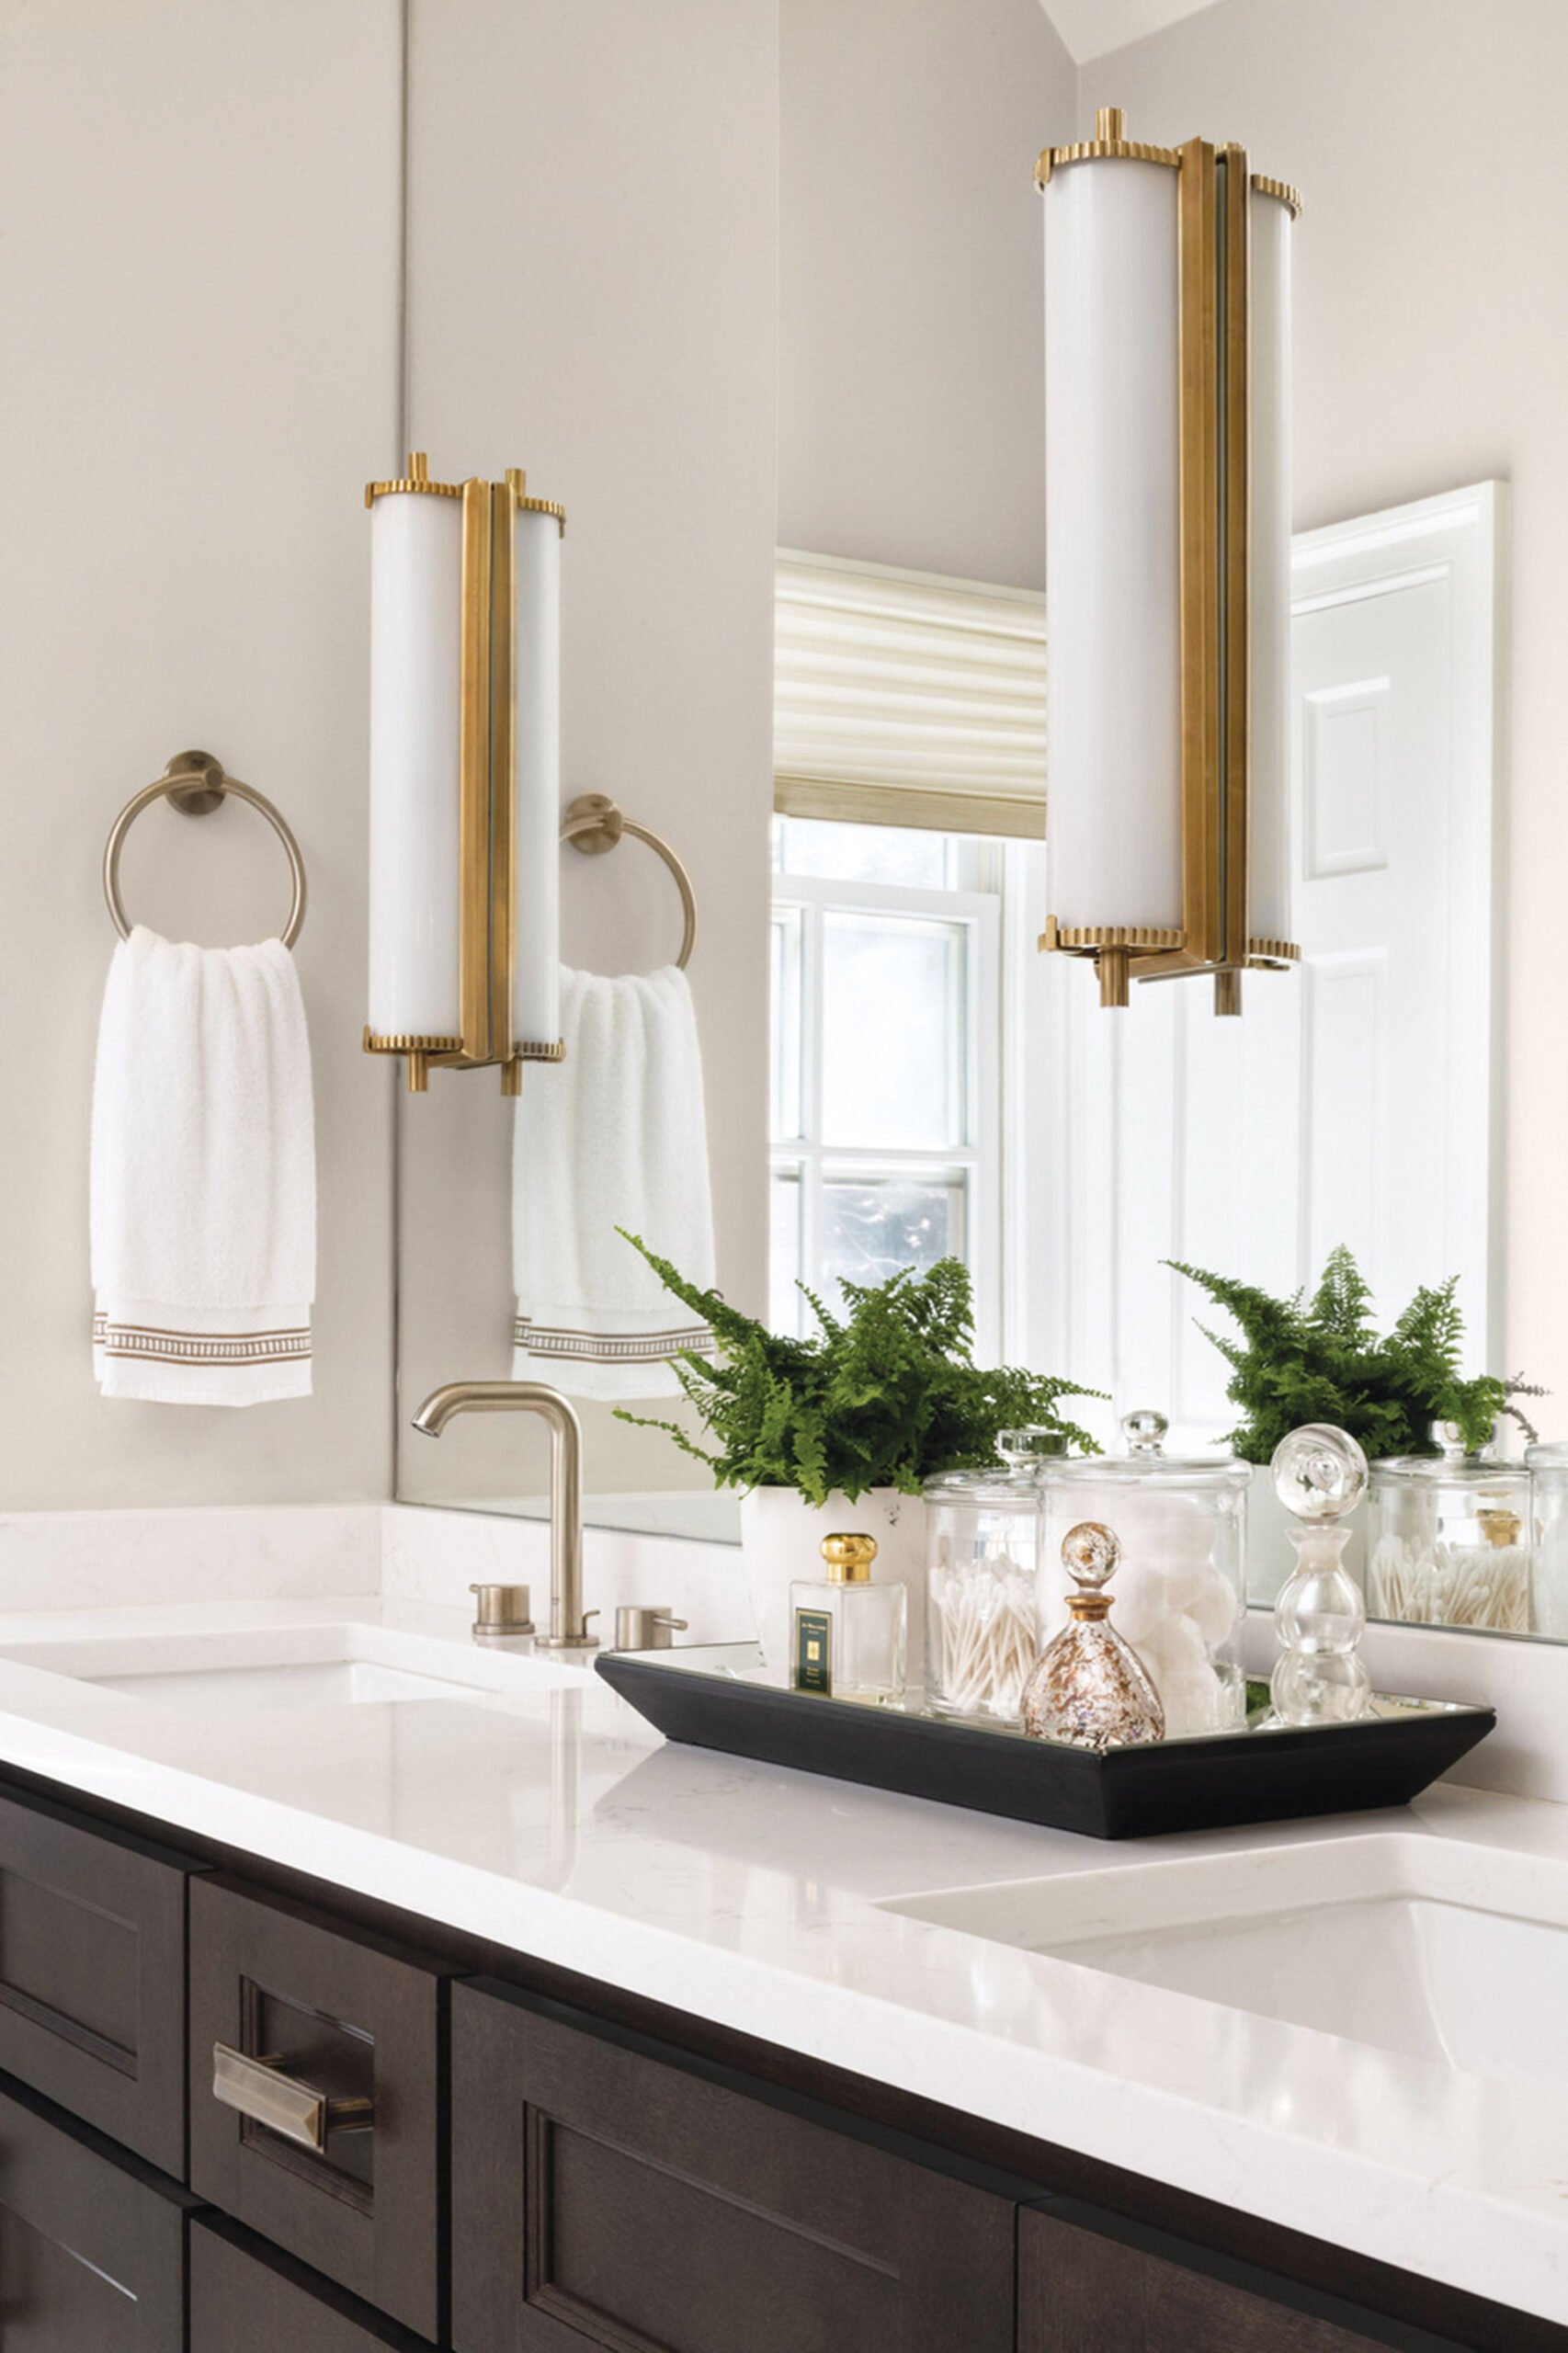 Vanity with sconces from Circa Lighting.